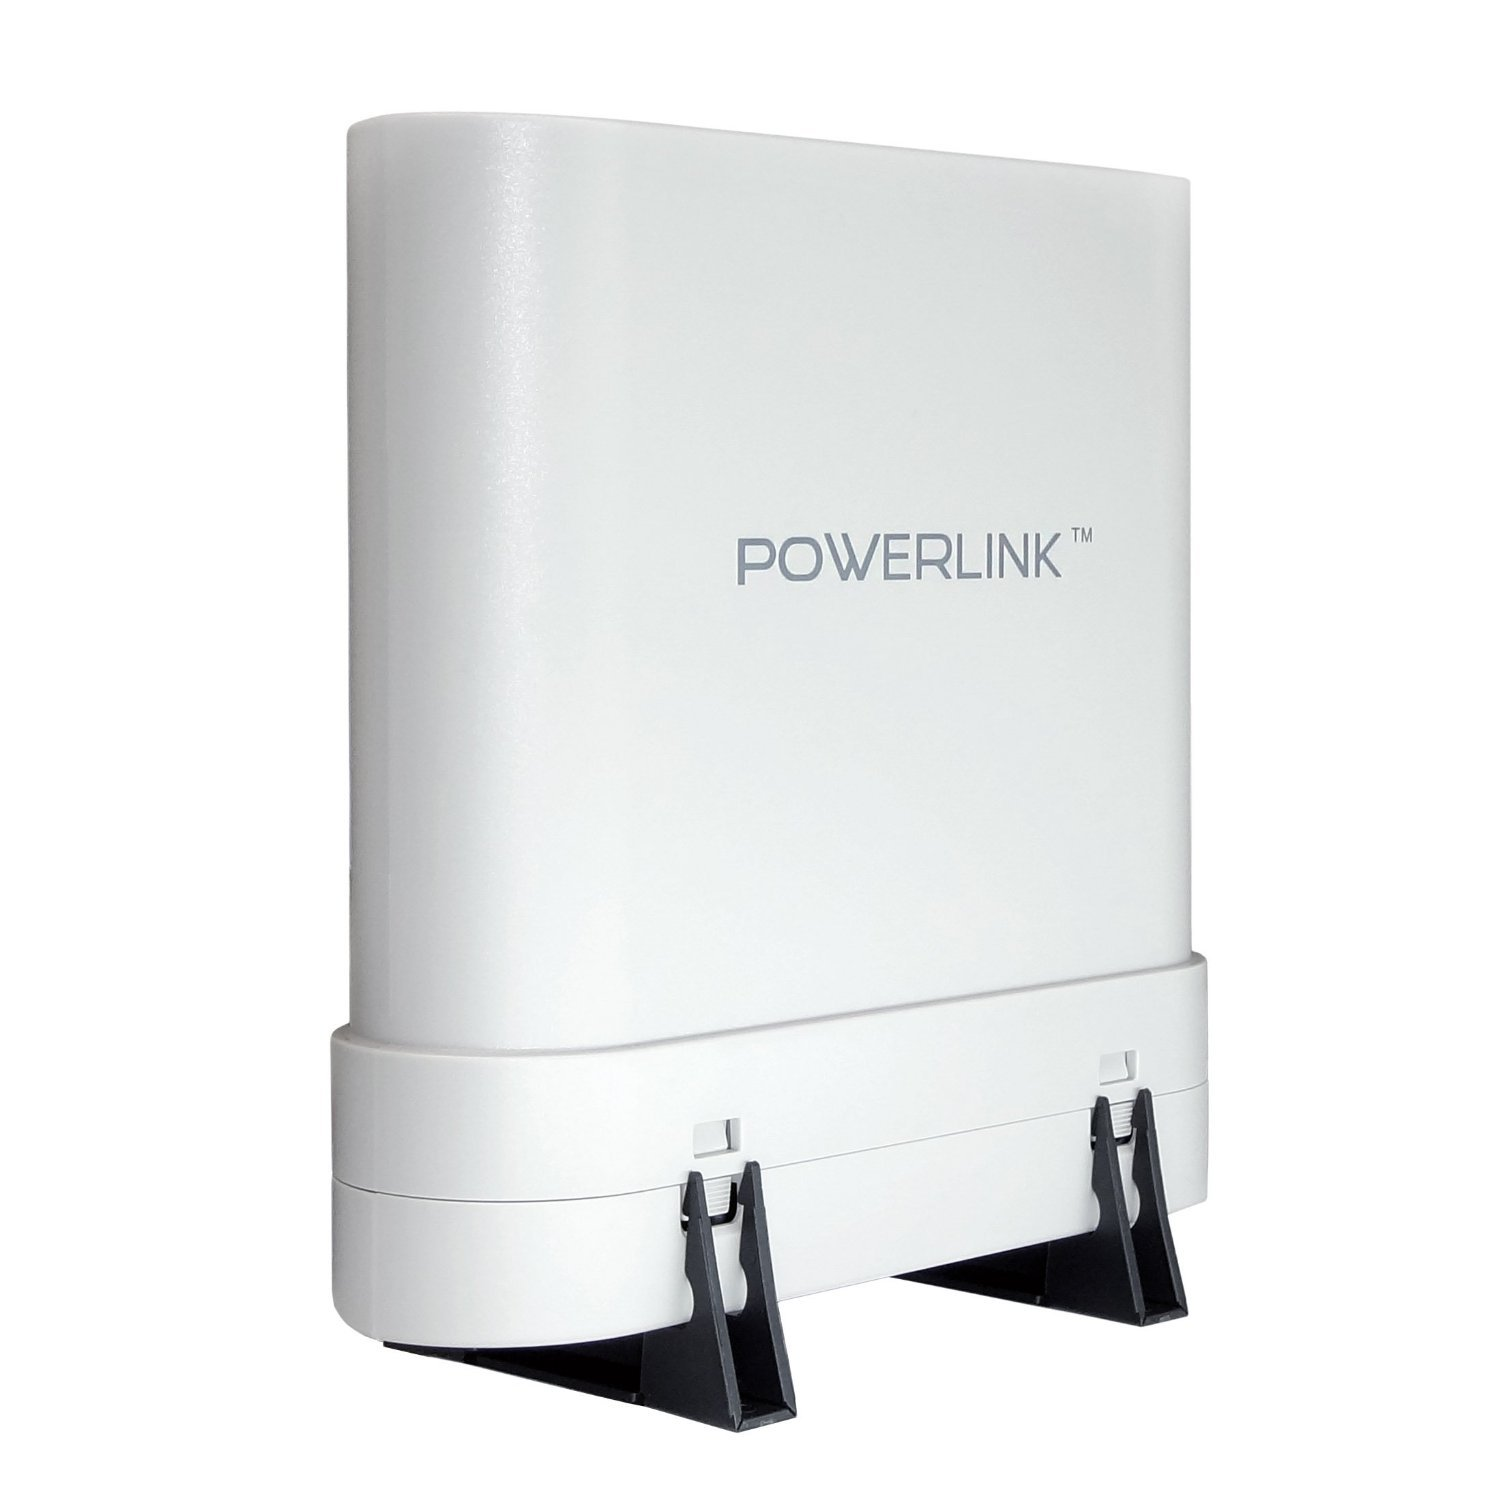 POWERLINK SPEEDY2 WINDOWS 8.1 DRIVER DOWNLOAD